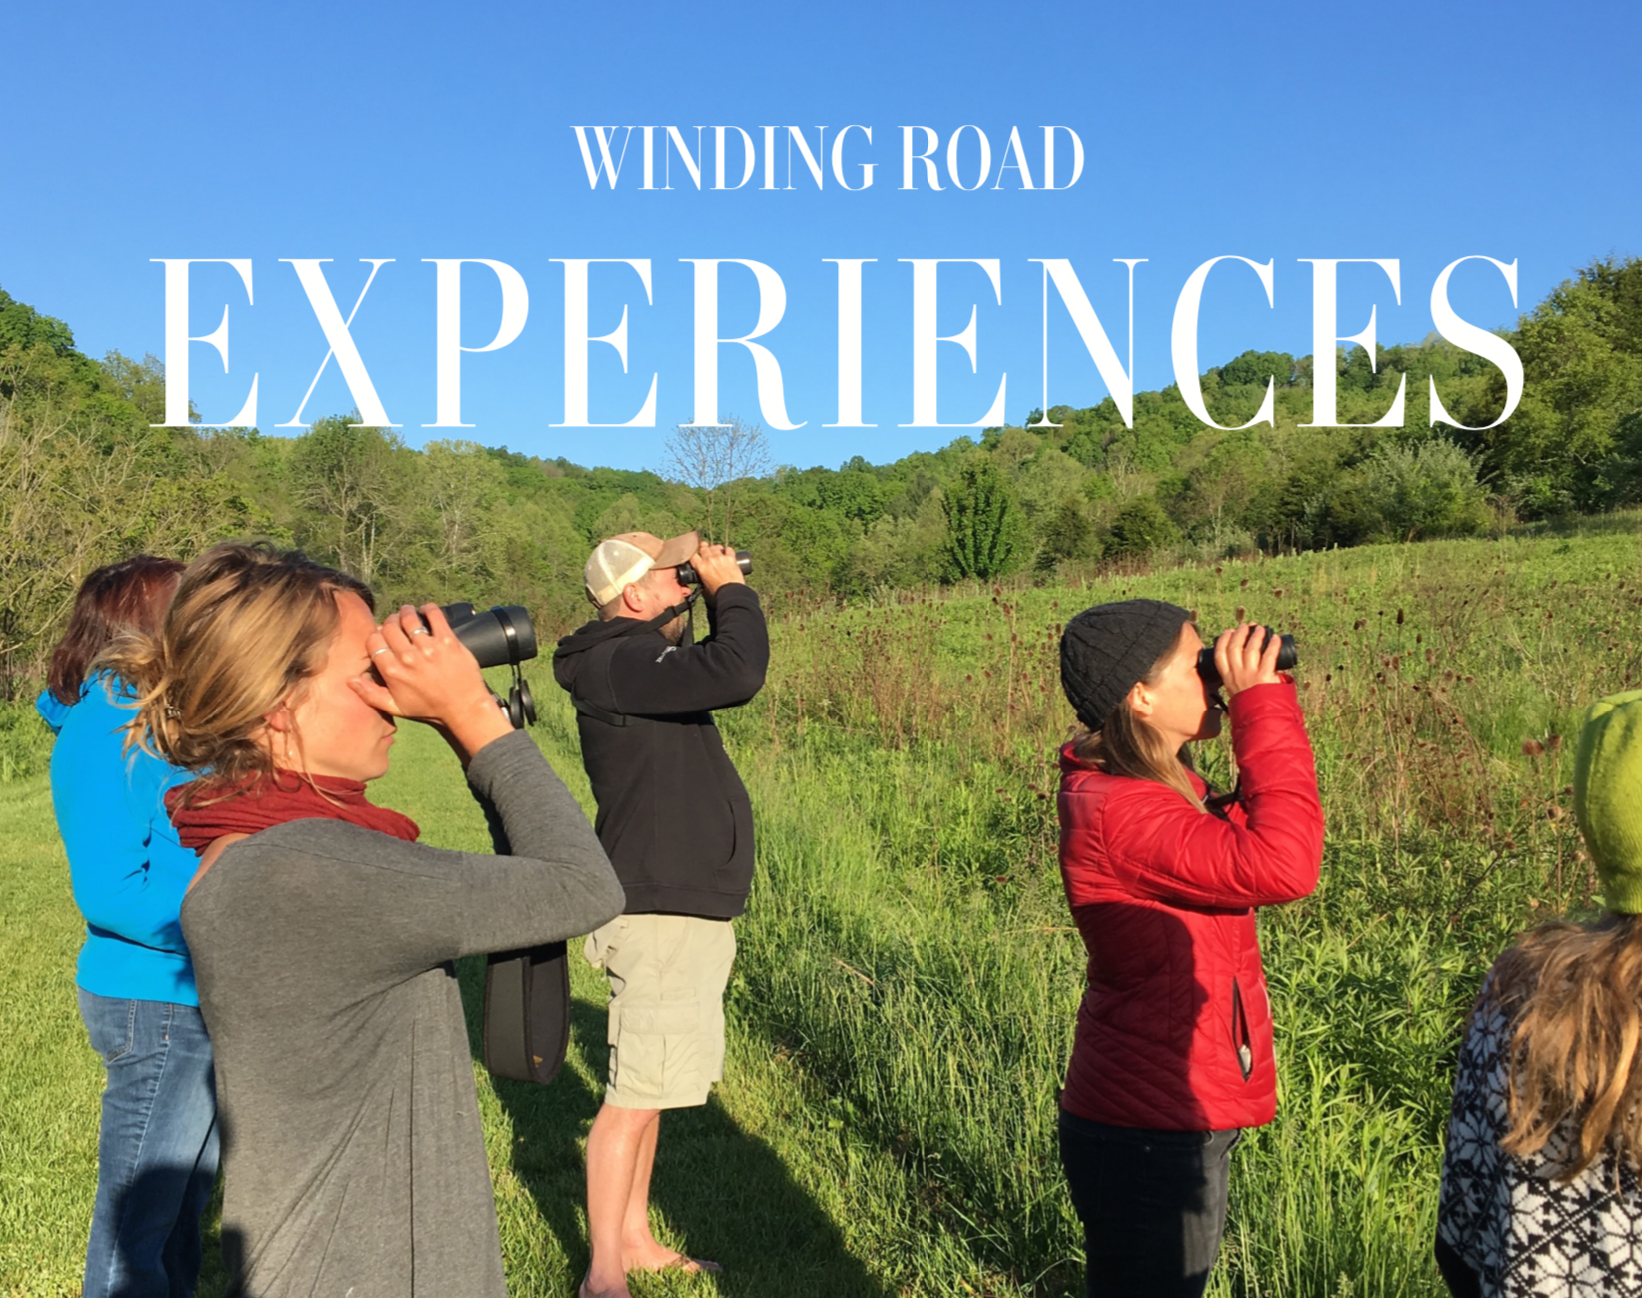 Winding Road Experiences